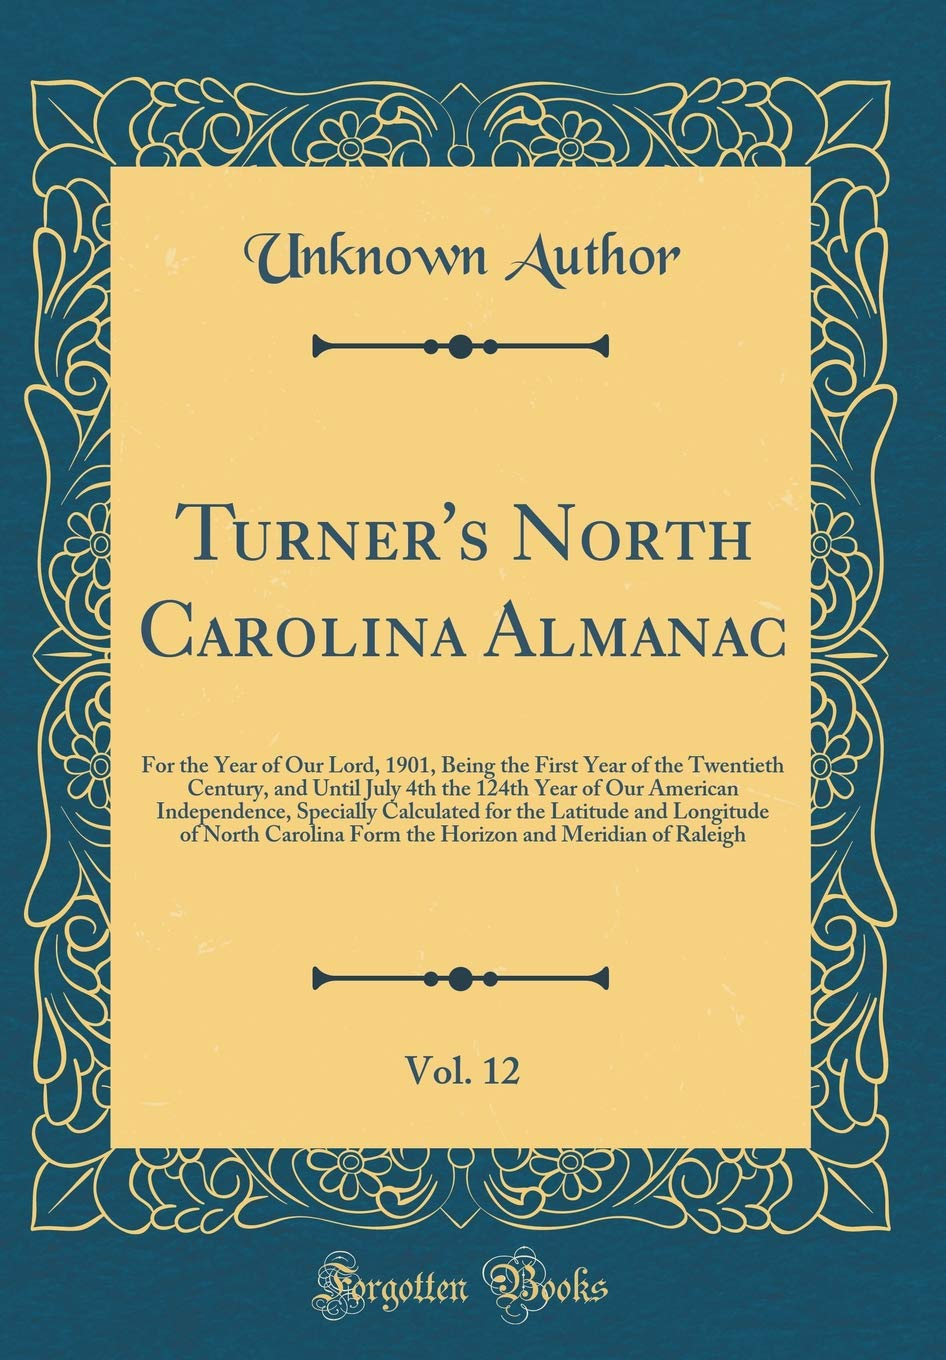 Download Turner's North Carolina Almanac, Vol. 12: For the Year of Our Lord, 1901, Being the First Year of the Twentieth Century, and Until July 4th the 124th ... the Latitude and Longitude of North Carolina PDF